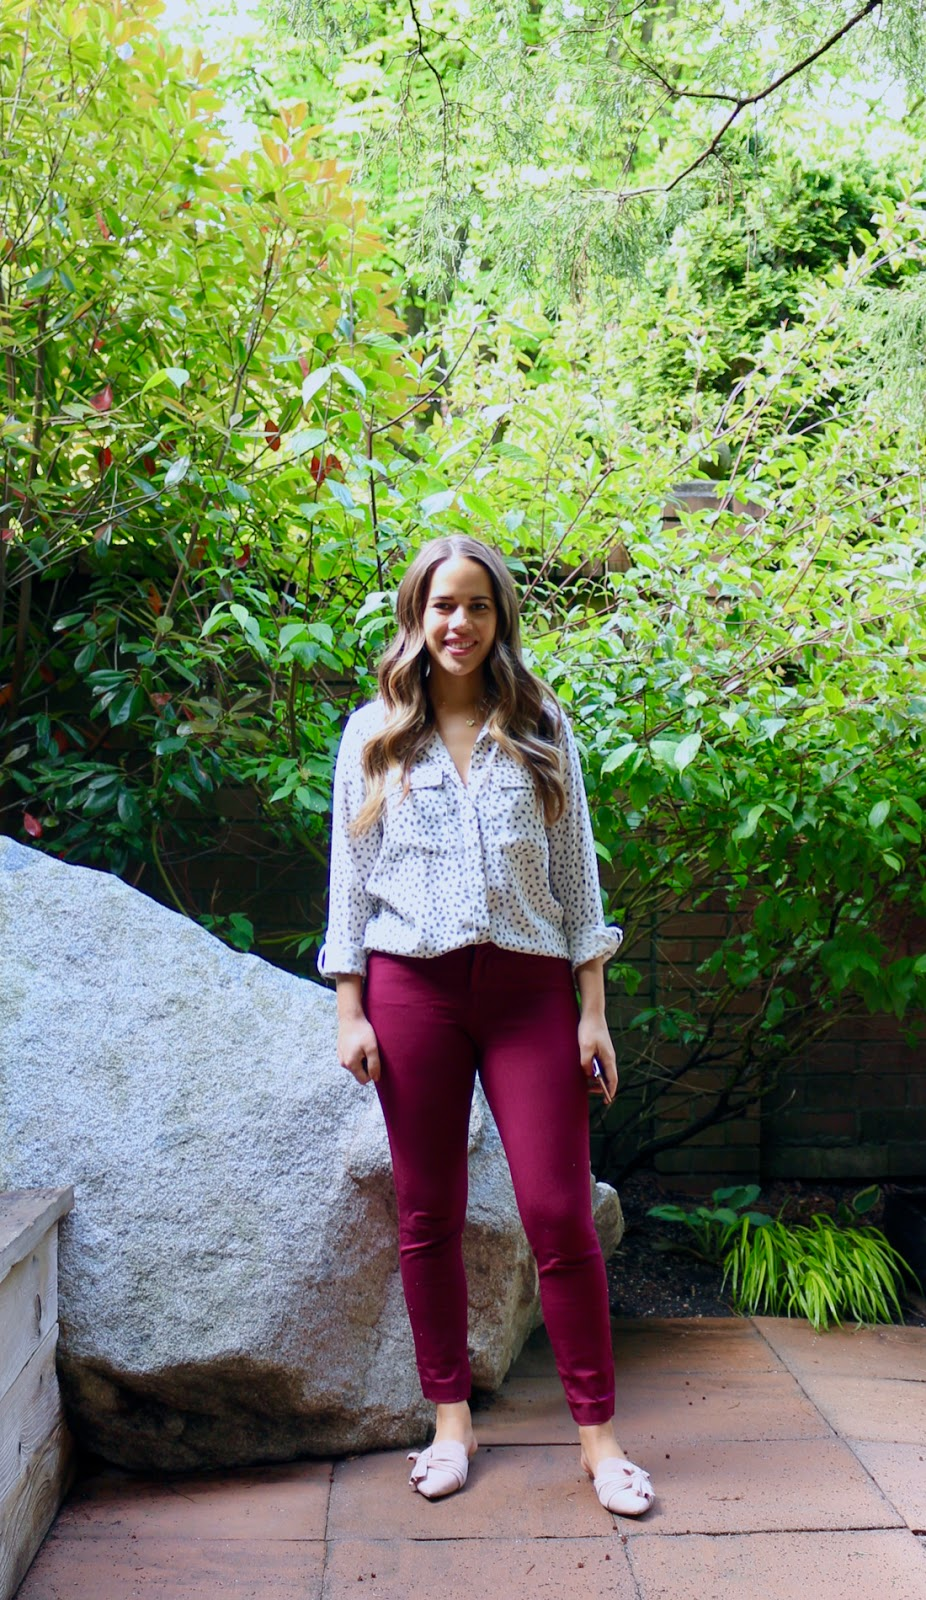 Jules in Flats - Patterned Pocket Blouse (Business Casual Spring Workwear on a Budget)